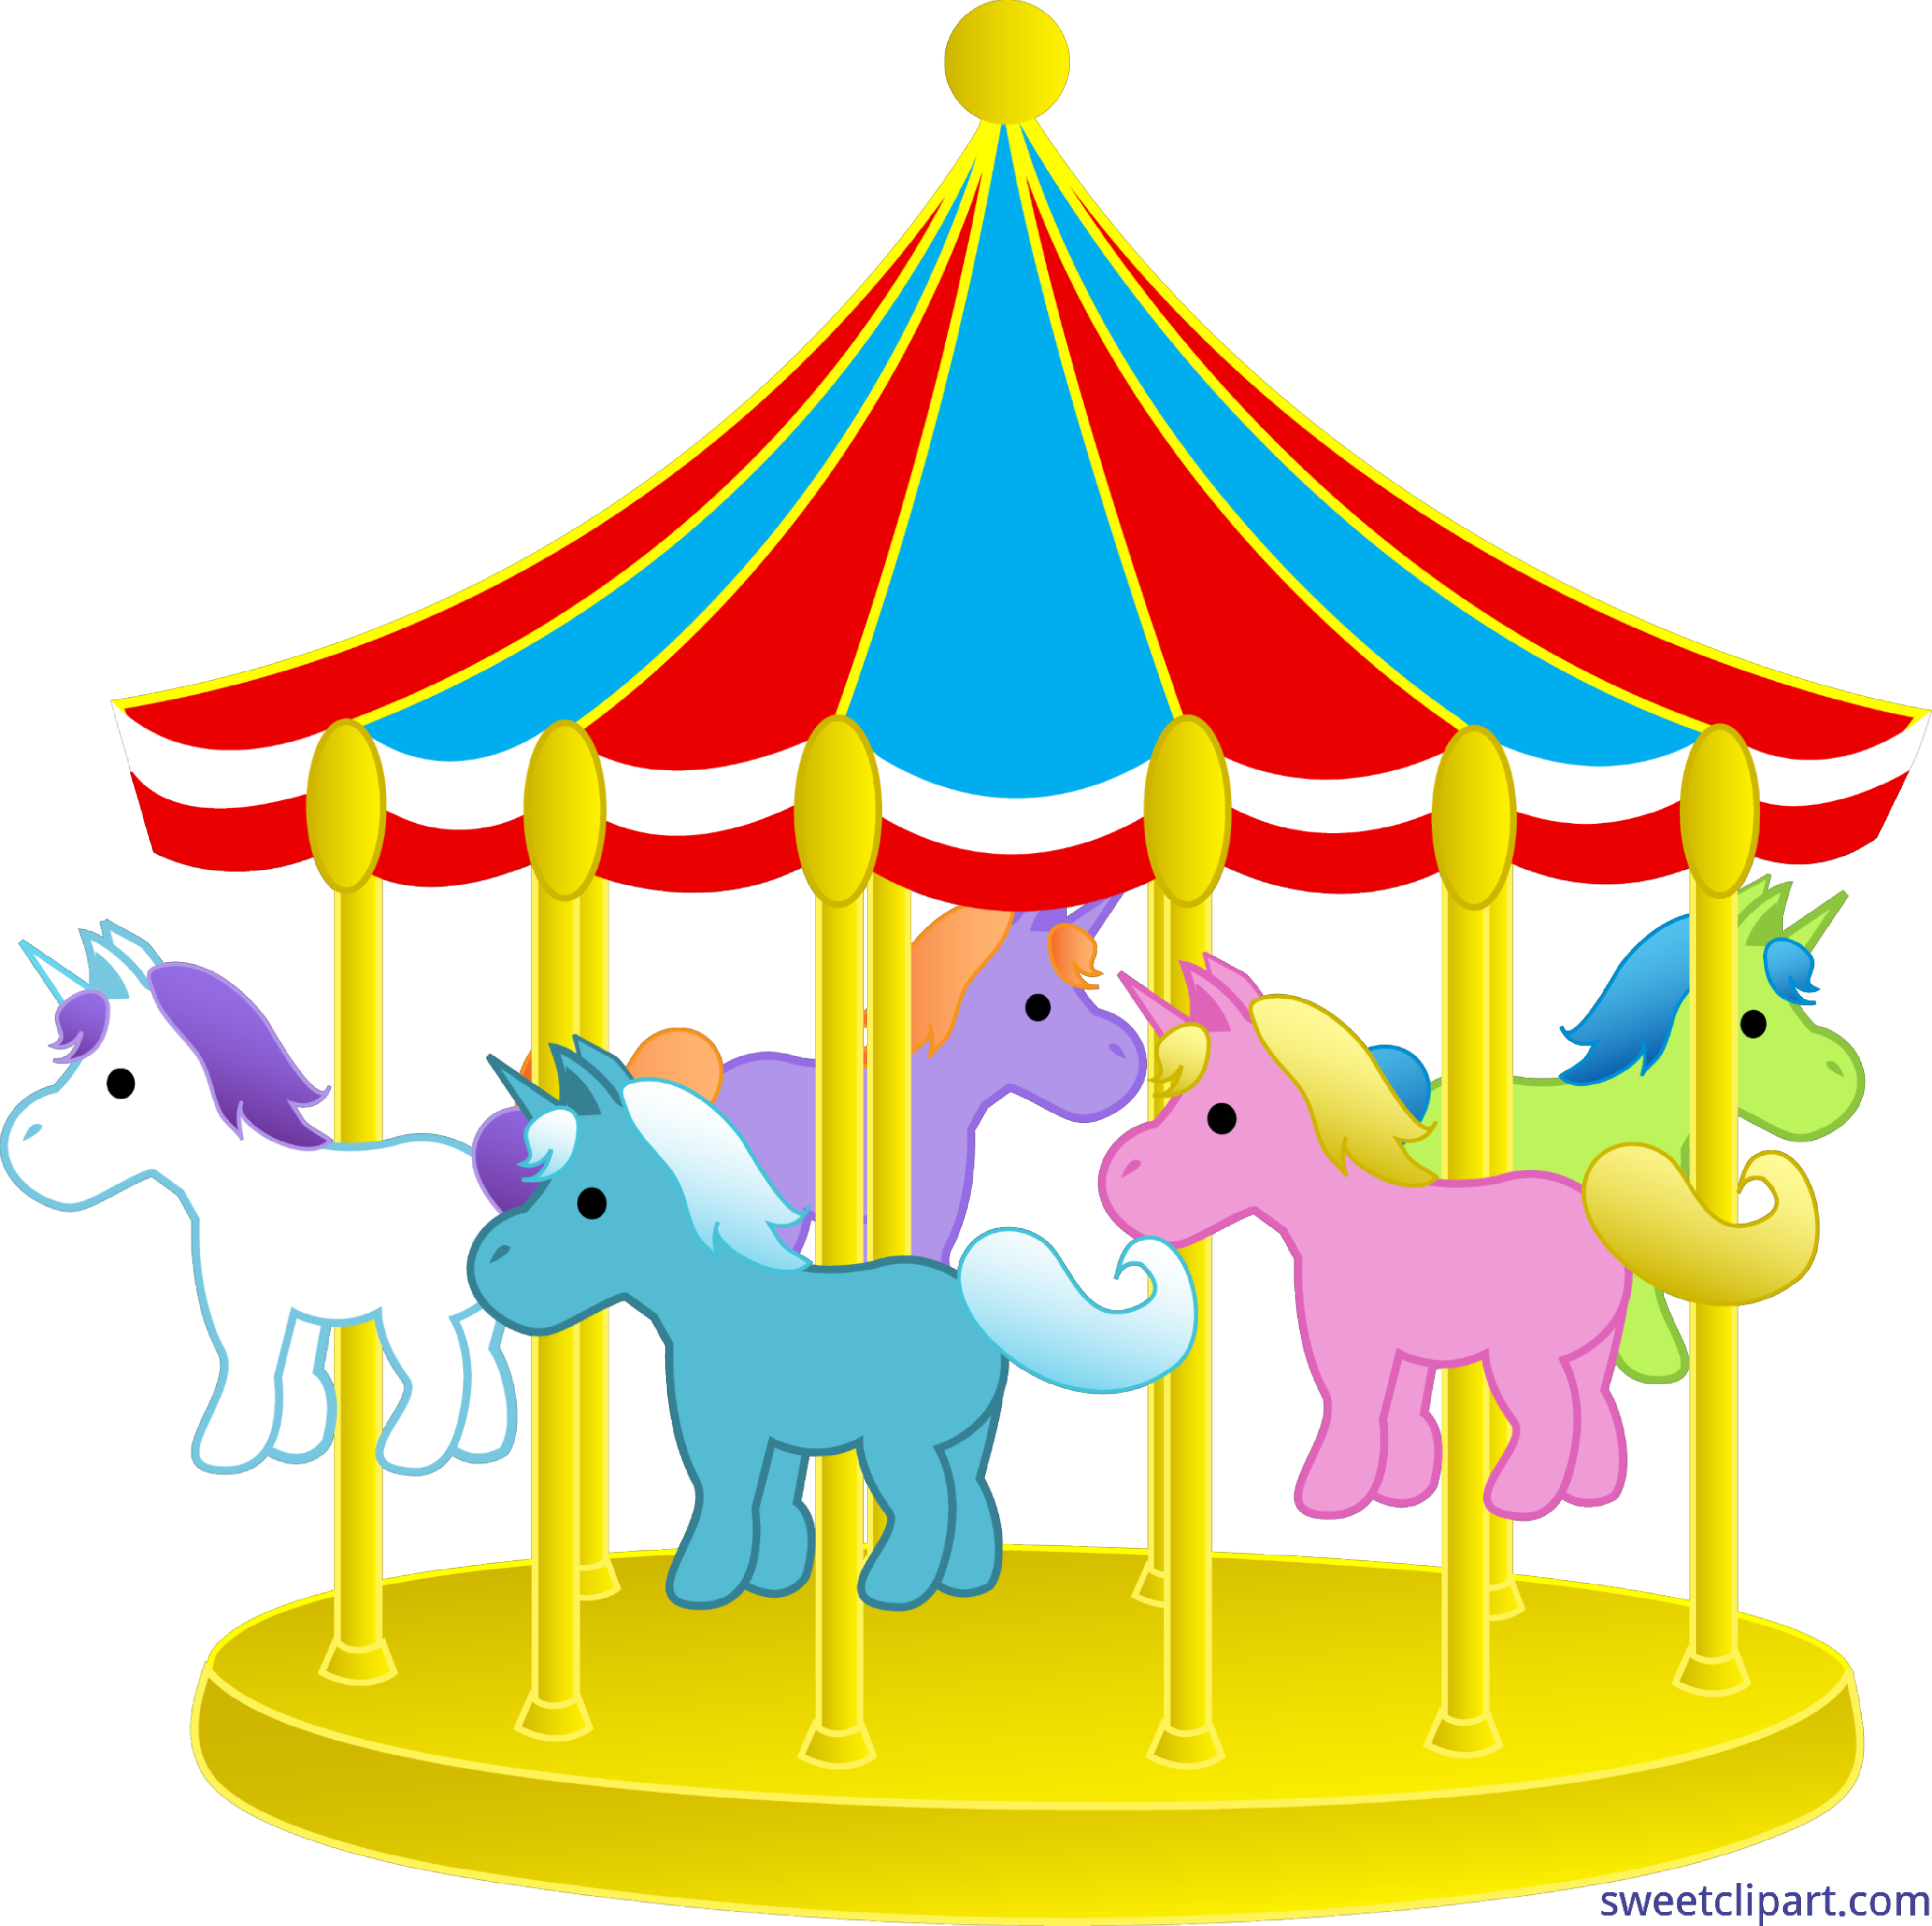 Game clipart funfair game. Objects carnival carousel clip